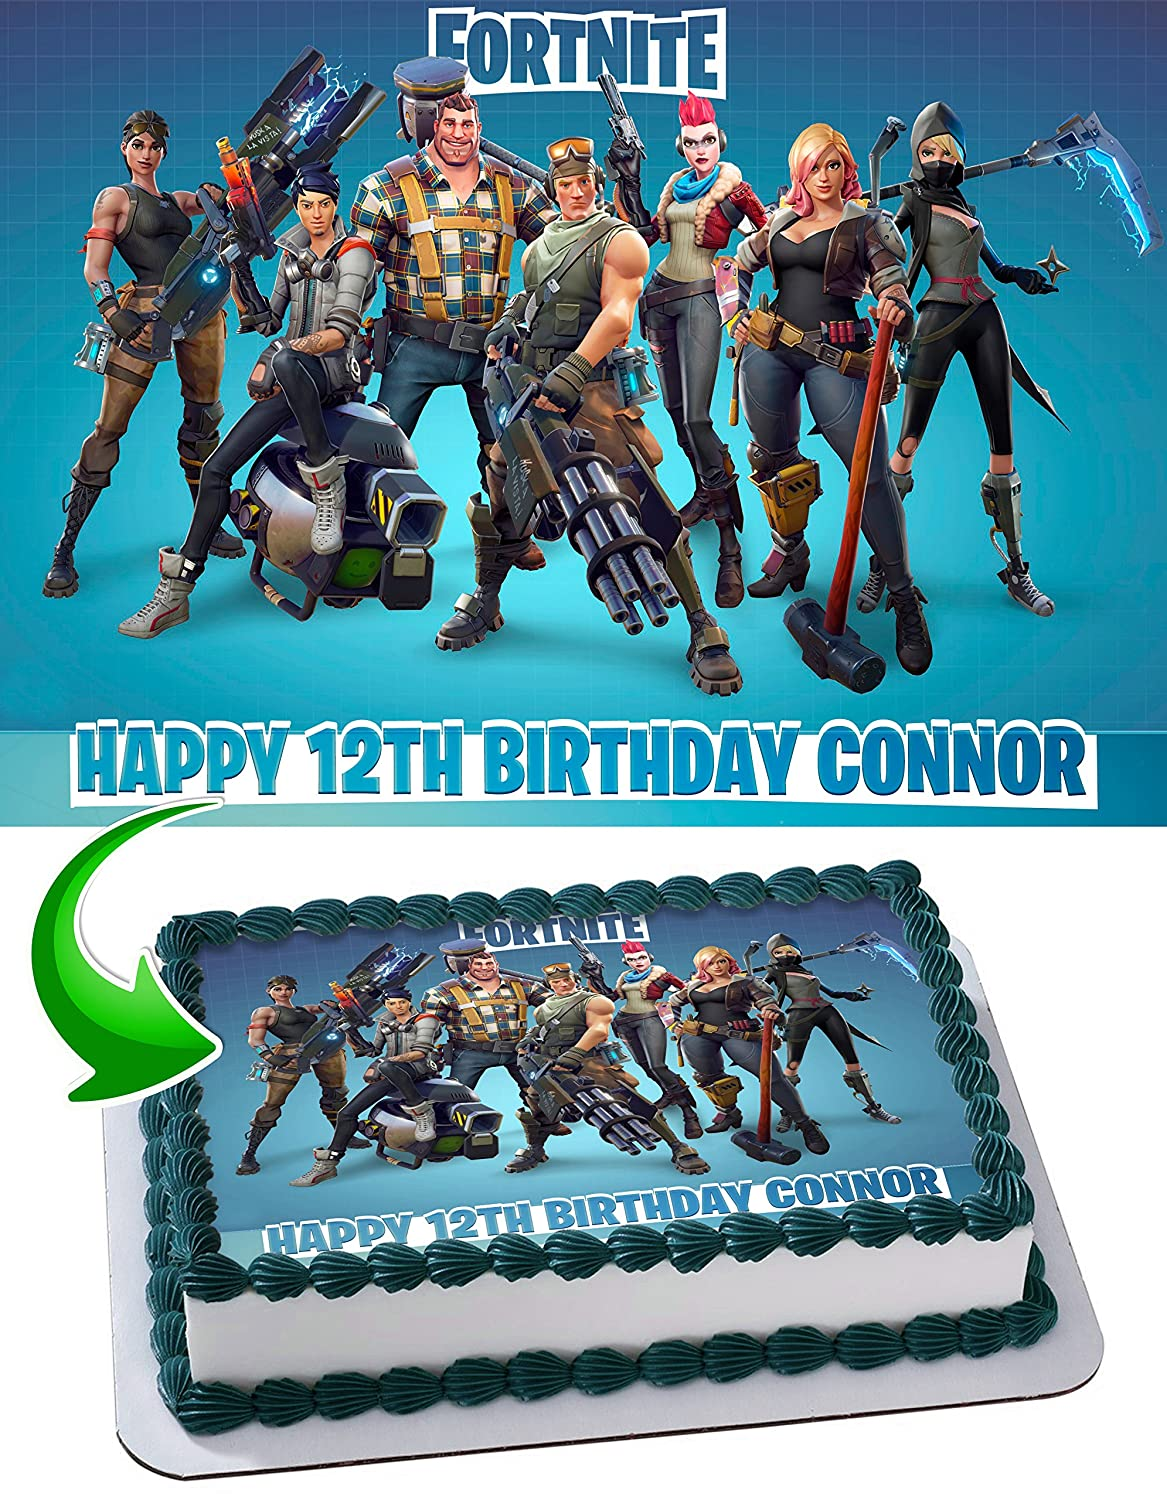 Fortnite Edible Cake Topper Personalized Icing Sugar Paper A4 Sheet